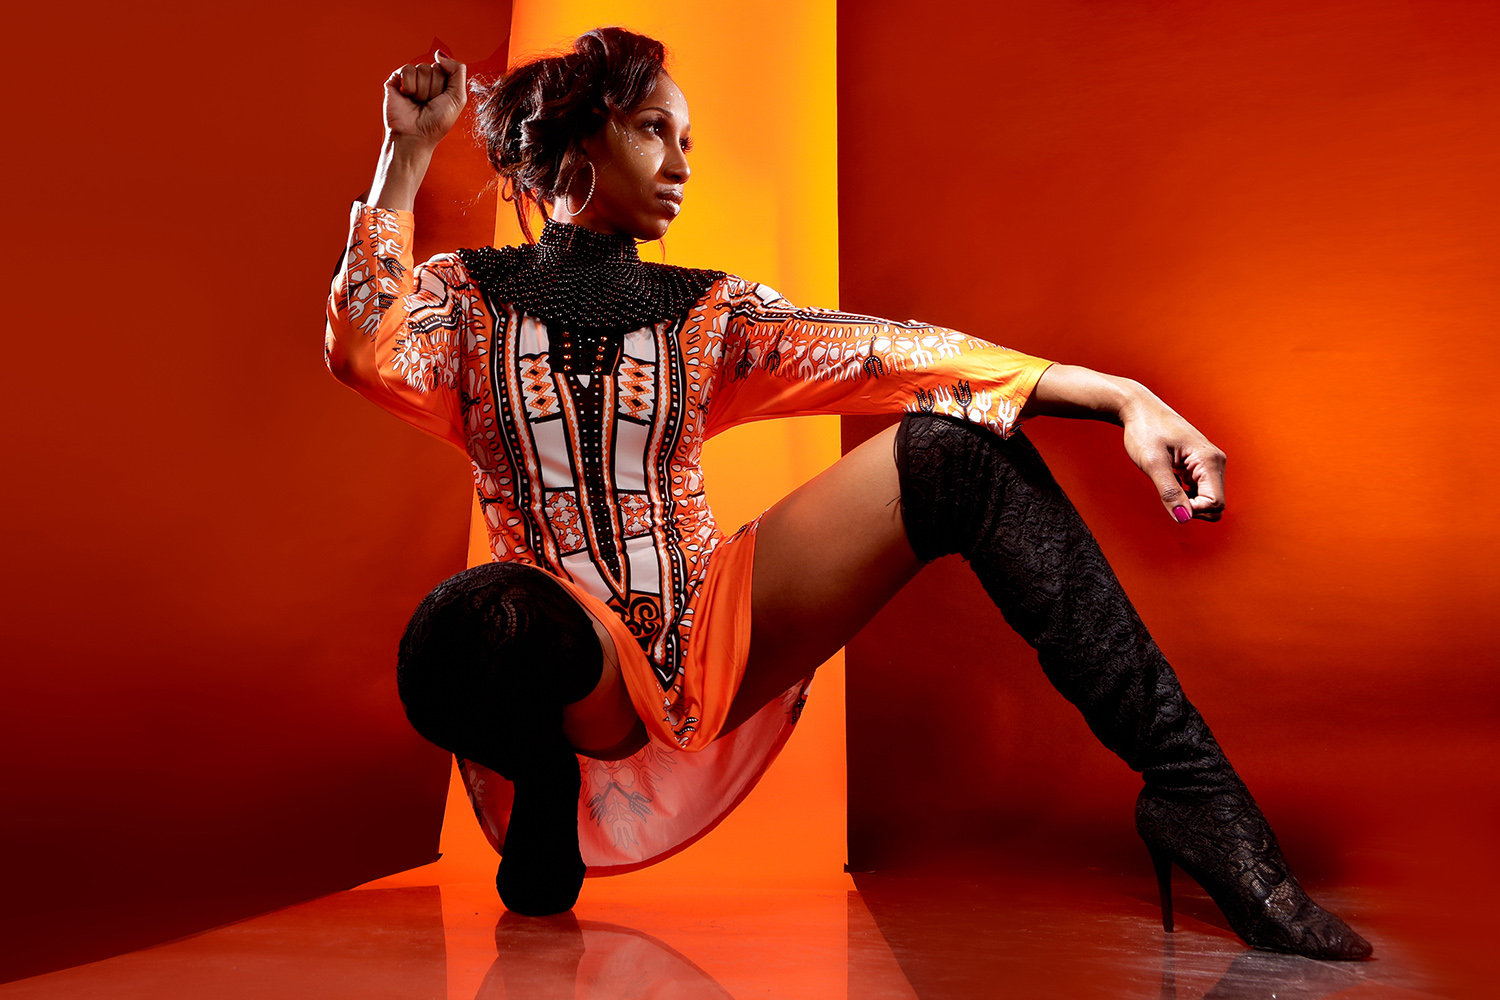 Fashion Model Showcase: Nesha A women with a Dream